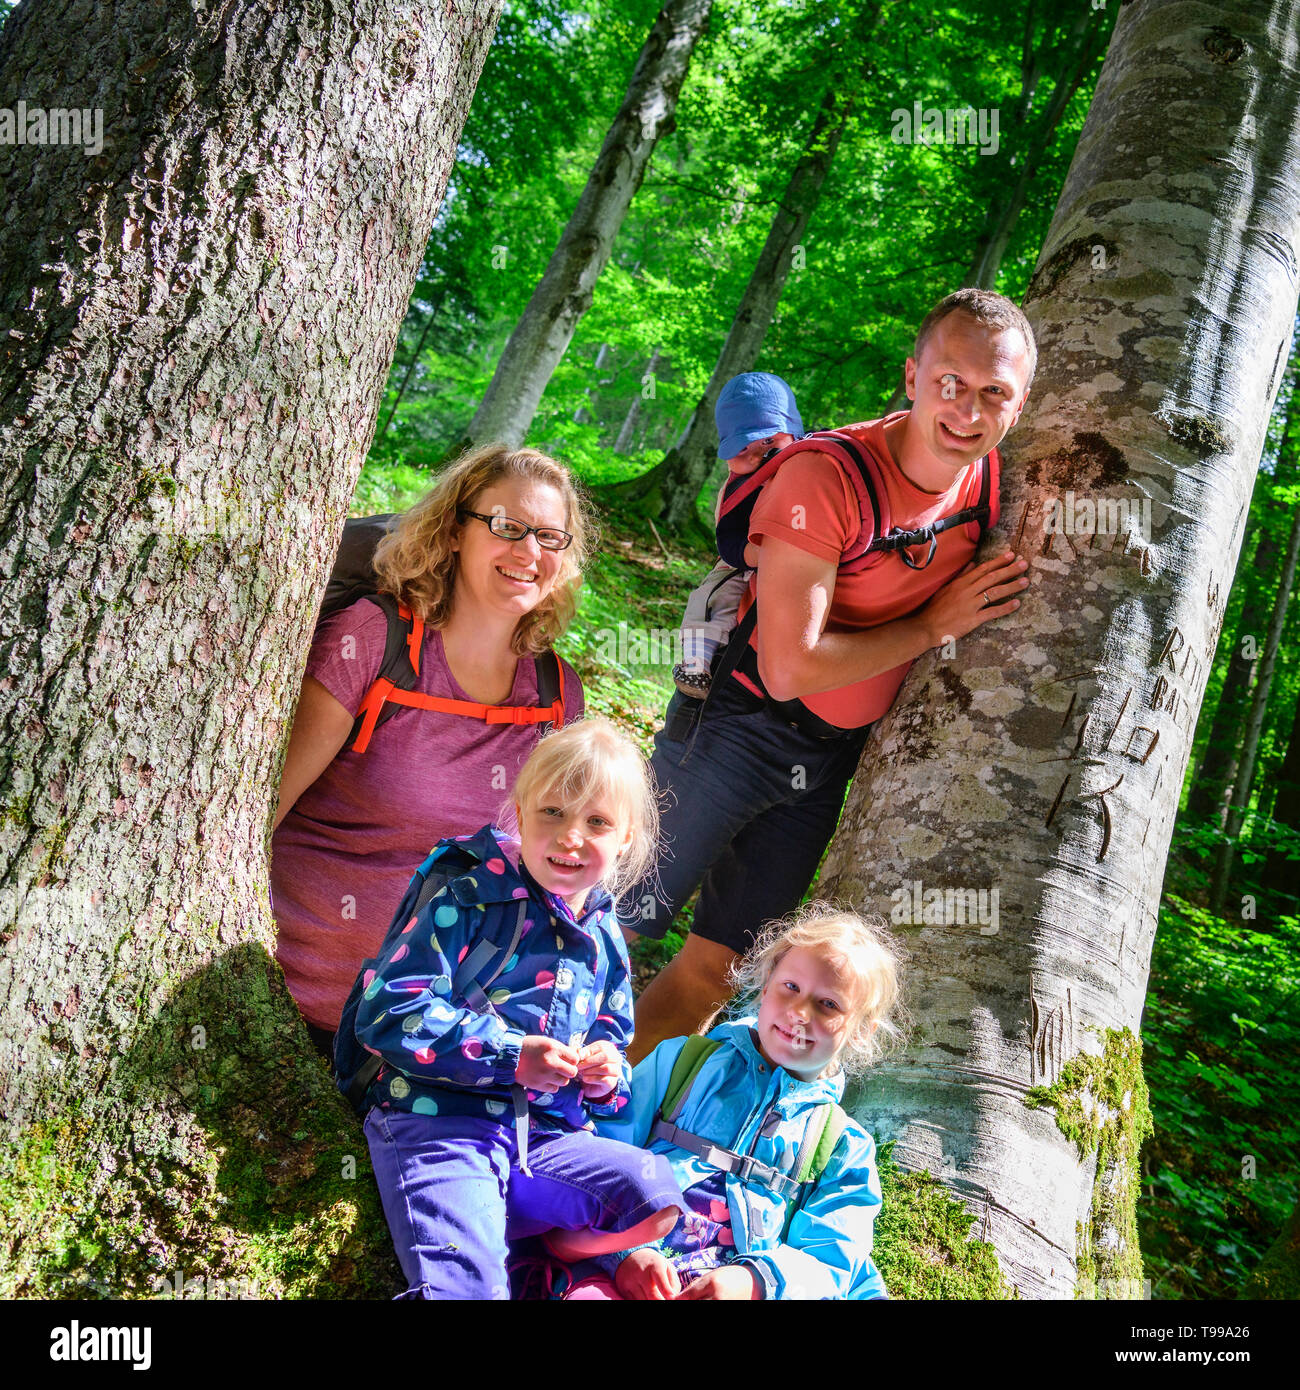 Hiking tour with the hole family around Gerstruben in Upper Allgäu, family posing together between two trees - Stock Image